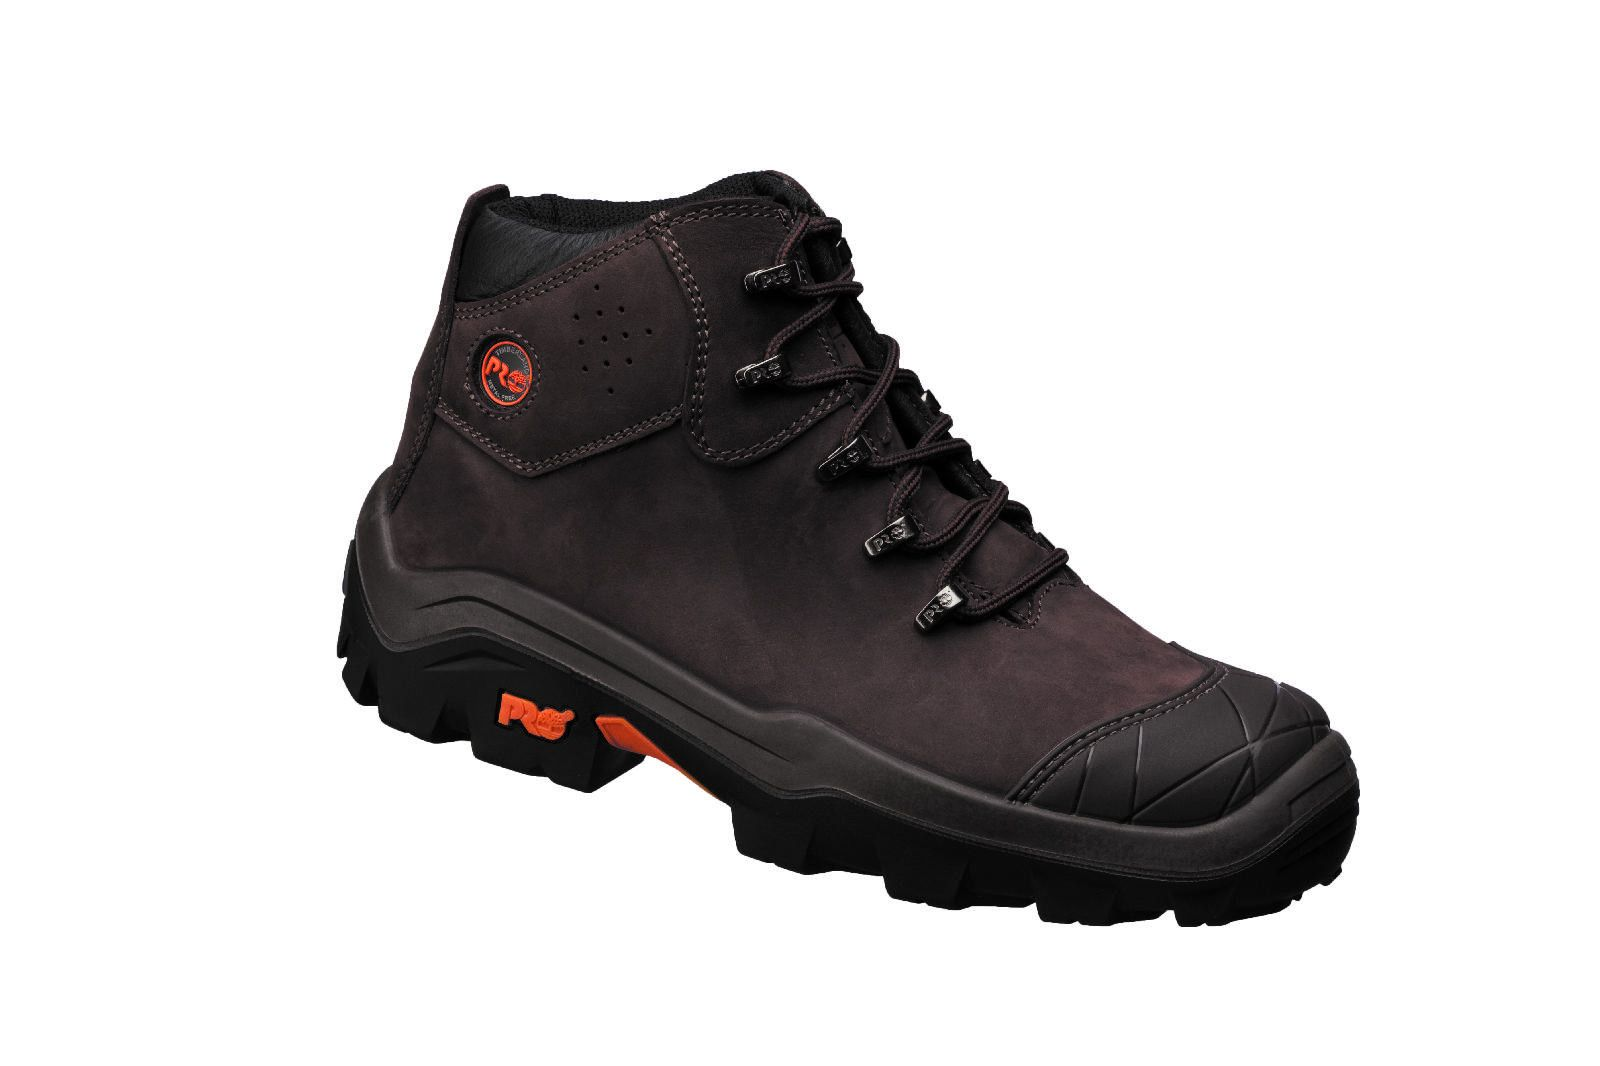 Timberland Pro Snyders Work Boots S3 SRC Composite Toe Black or Brown